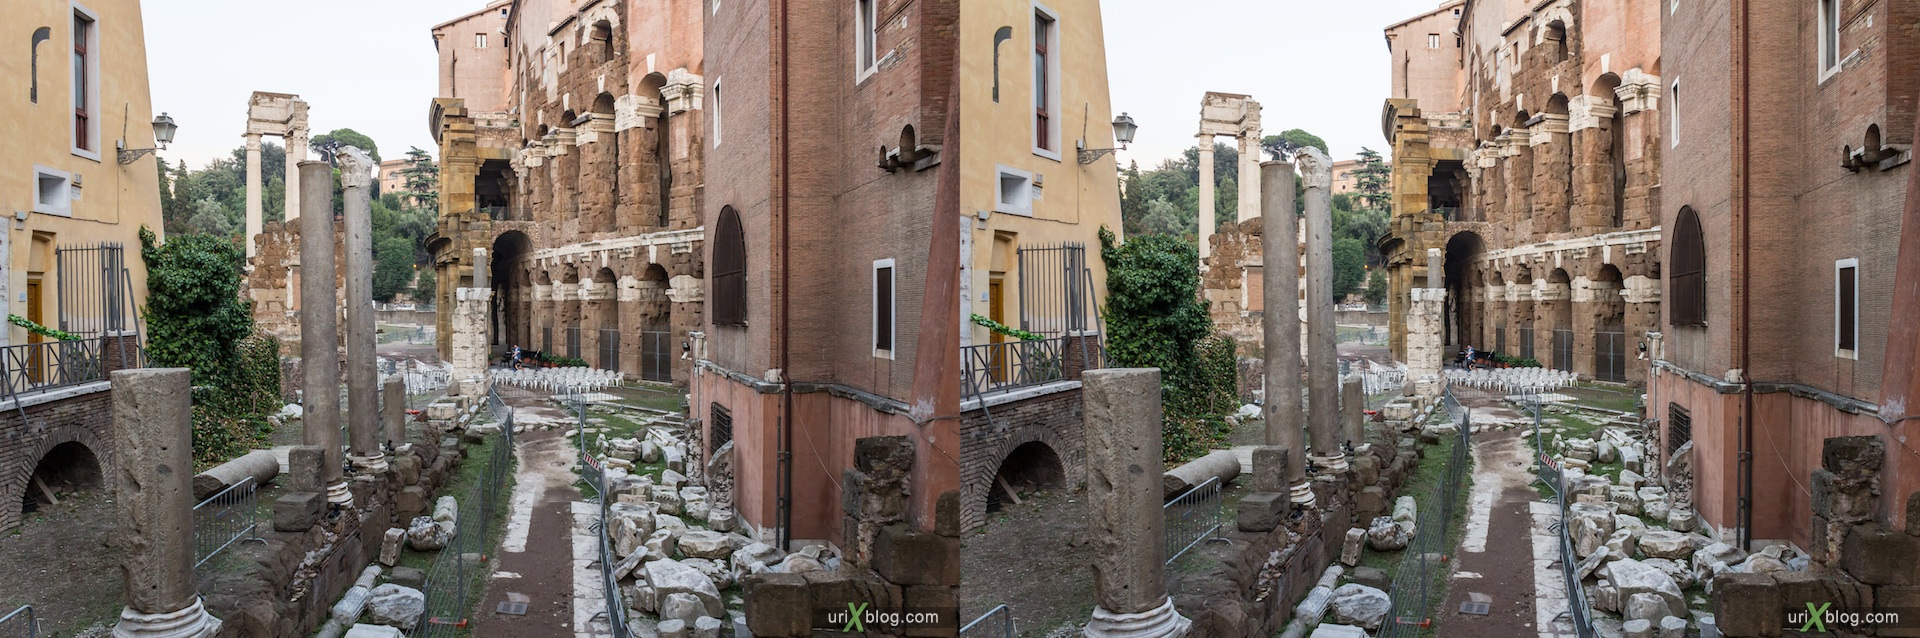 2012, Theater of Marcellus, Temple of Apollo Sosianus, 3D, stereo pair, cross-eyed, crossview, cross view stereo pair